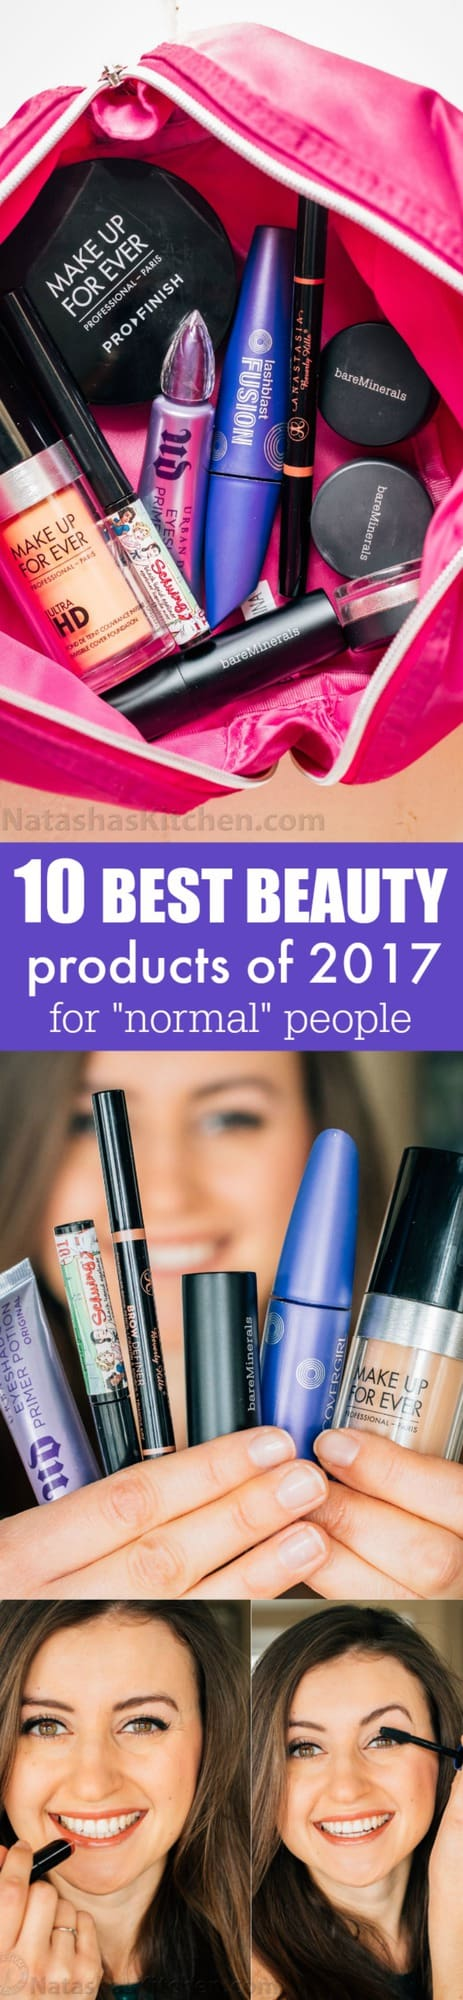 I'm convinced the 10 best makeup products for